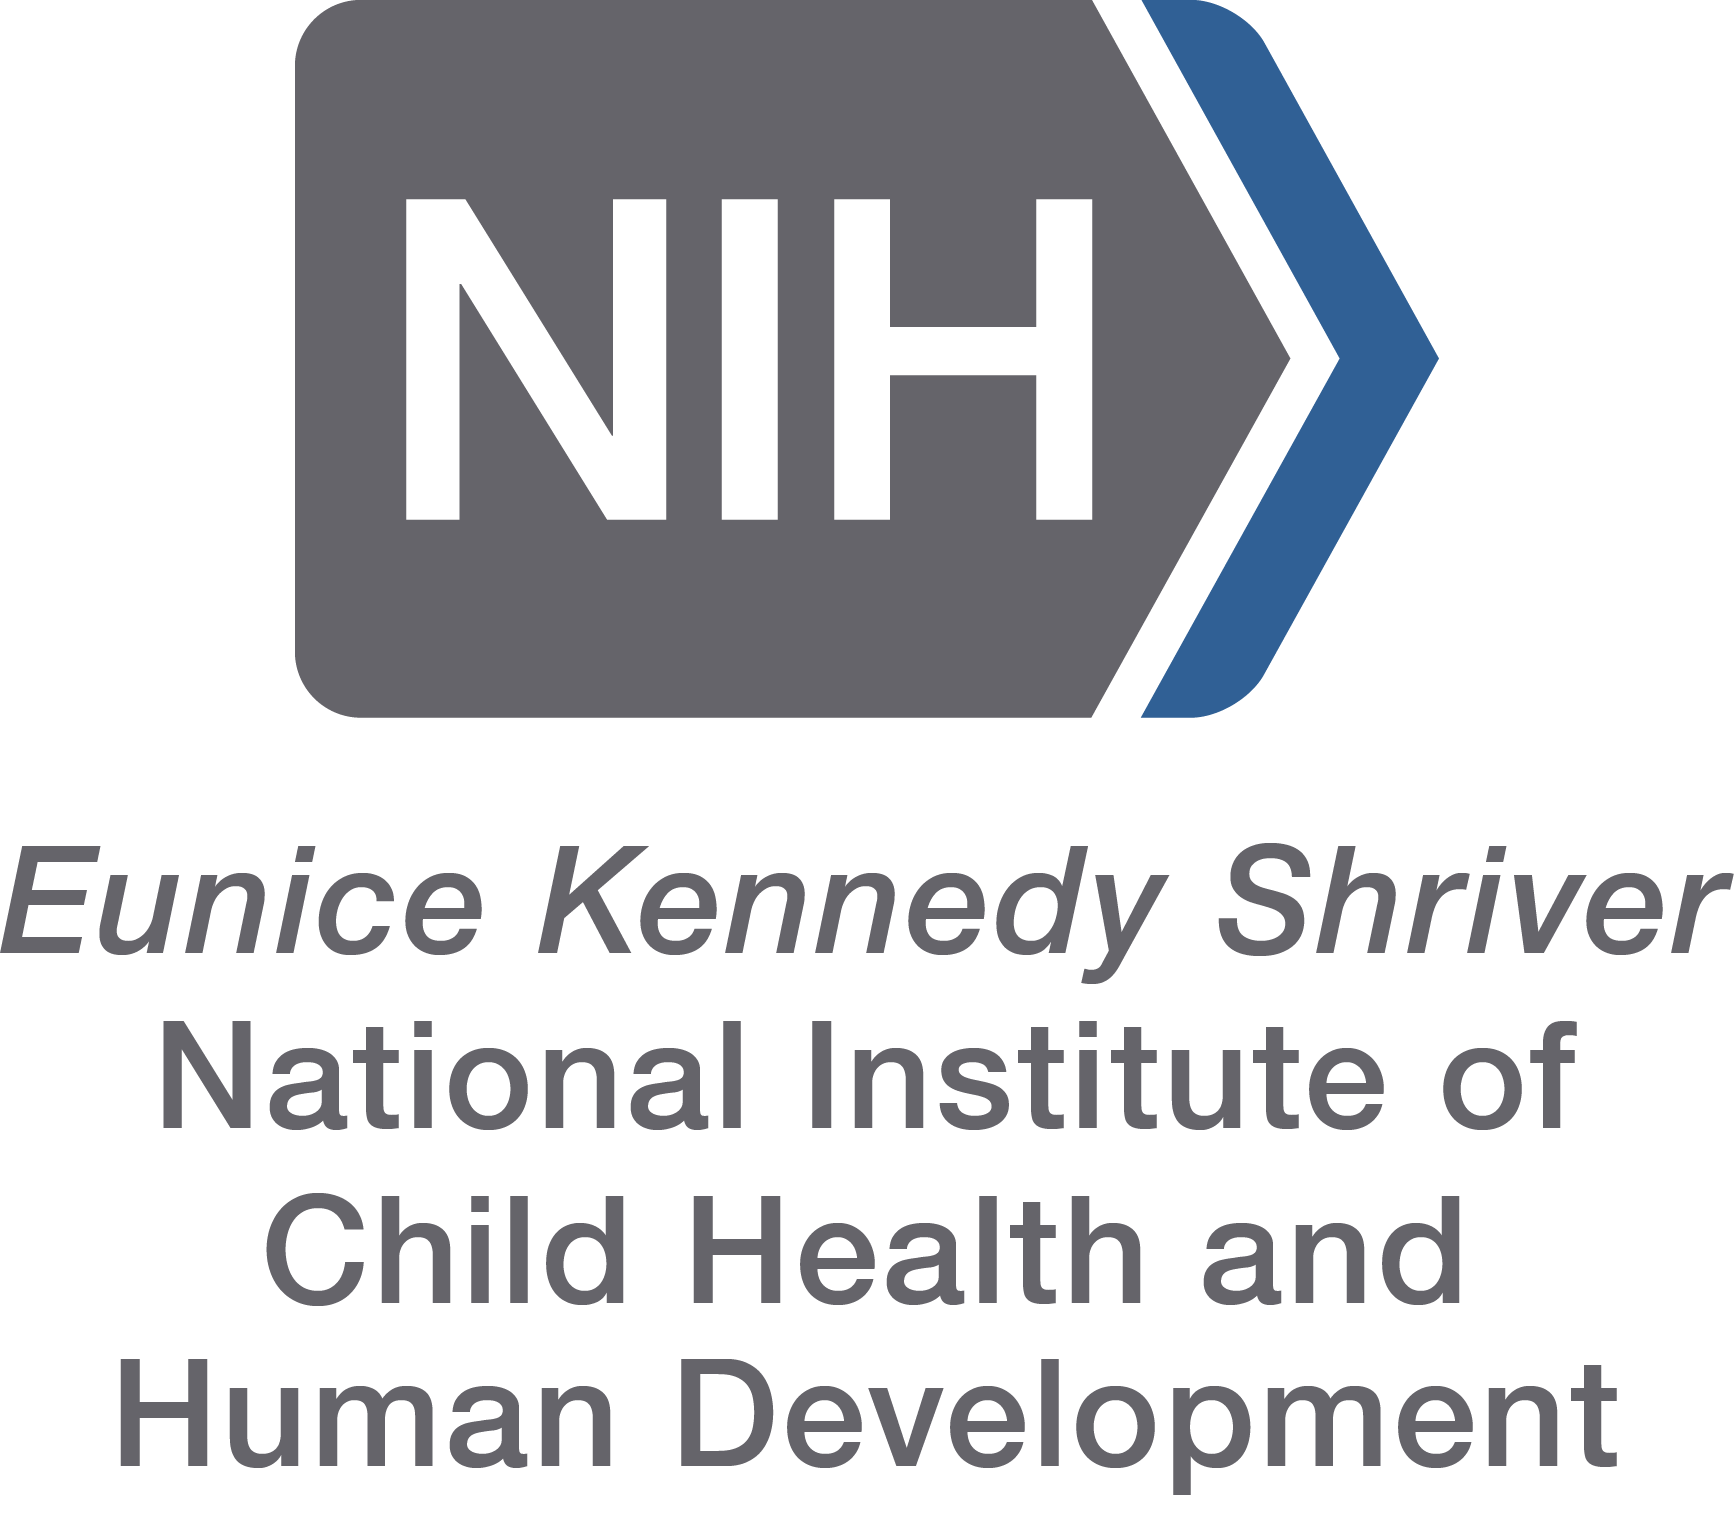 National Institute of Child Health and Human Development